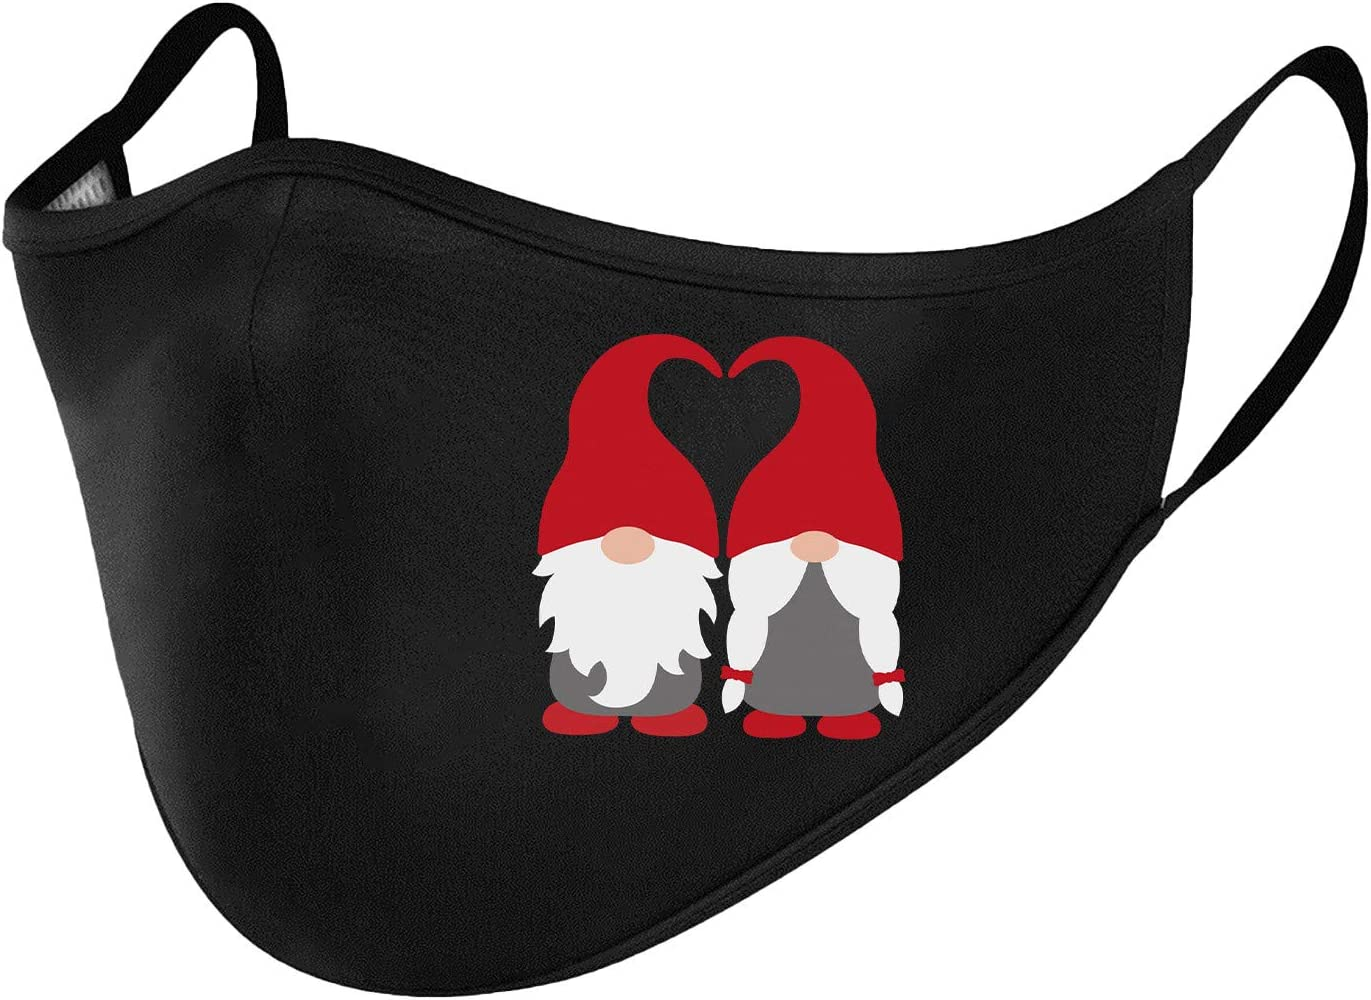 1PCS Windproof Activated Carbon Bandana,Valentines Day,Baby Cat Holding Heart Shaped Baloons Romantic Love Themed Illustration,Vermilion Black,Facial decorations for adults